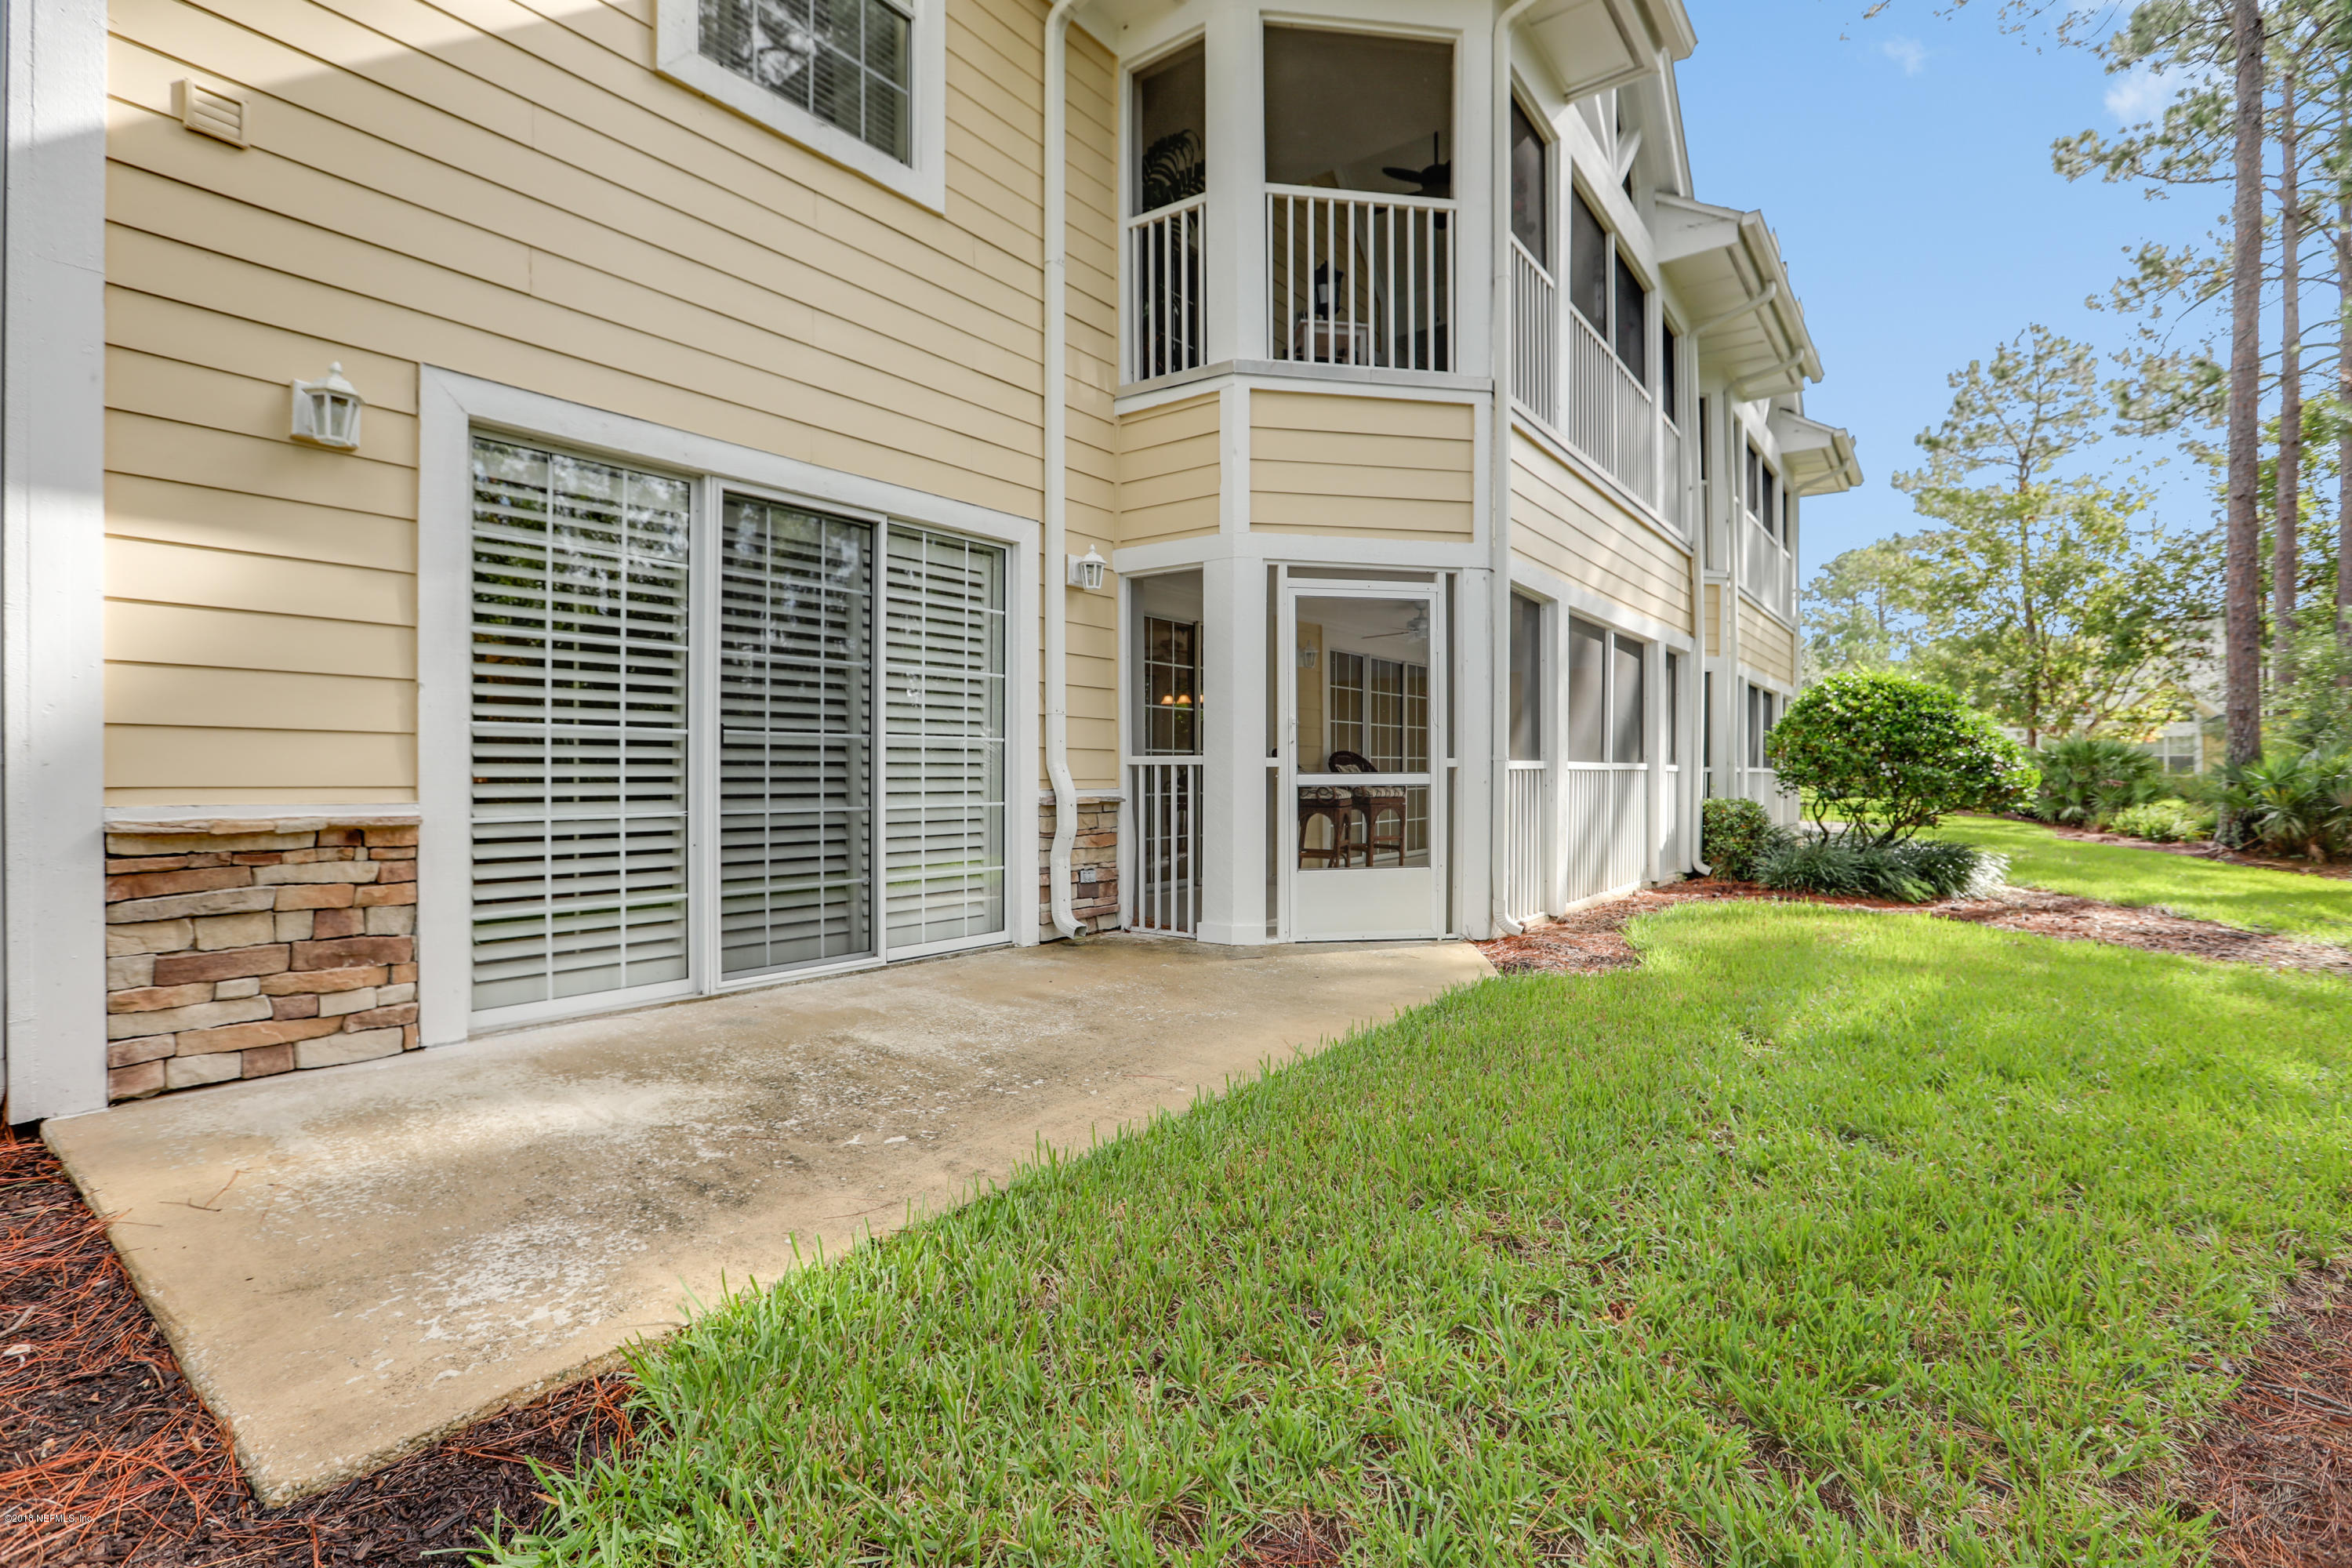 350 SHORE, ST AUGUSTINE, FLORIDA 32092, 3 Bedrooms Bedrooms, ,3 BathroomsBathrooms,Residential - condos/townhomes,For sale,SHORE,960905